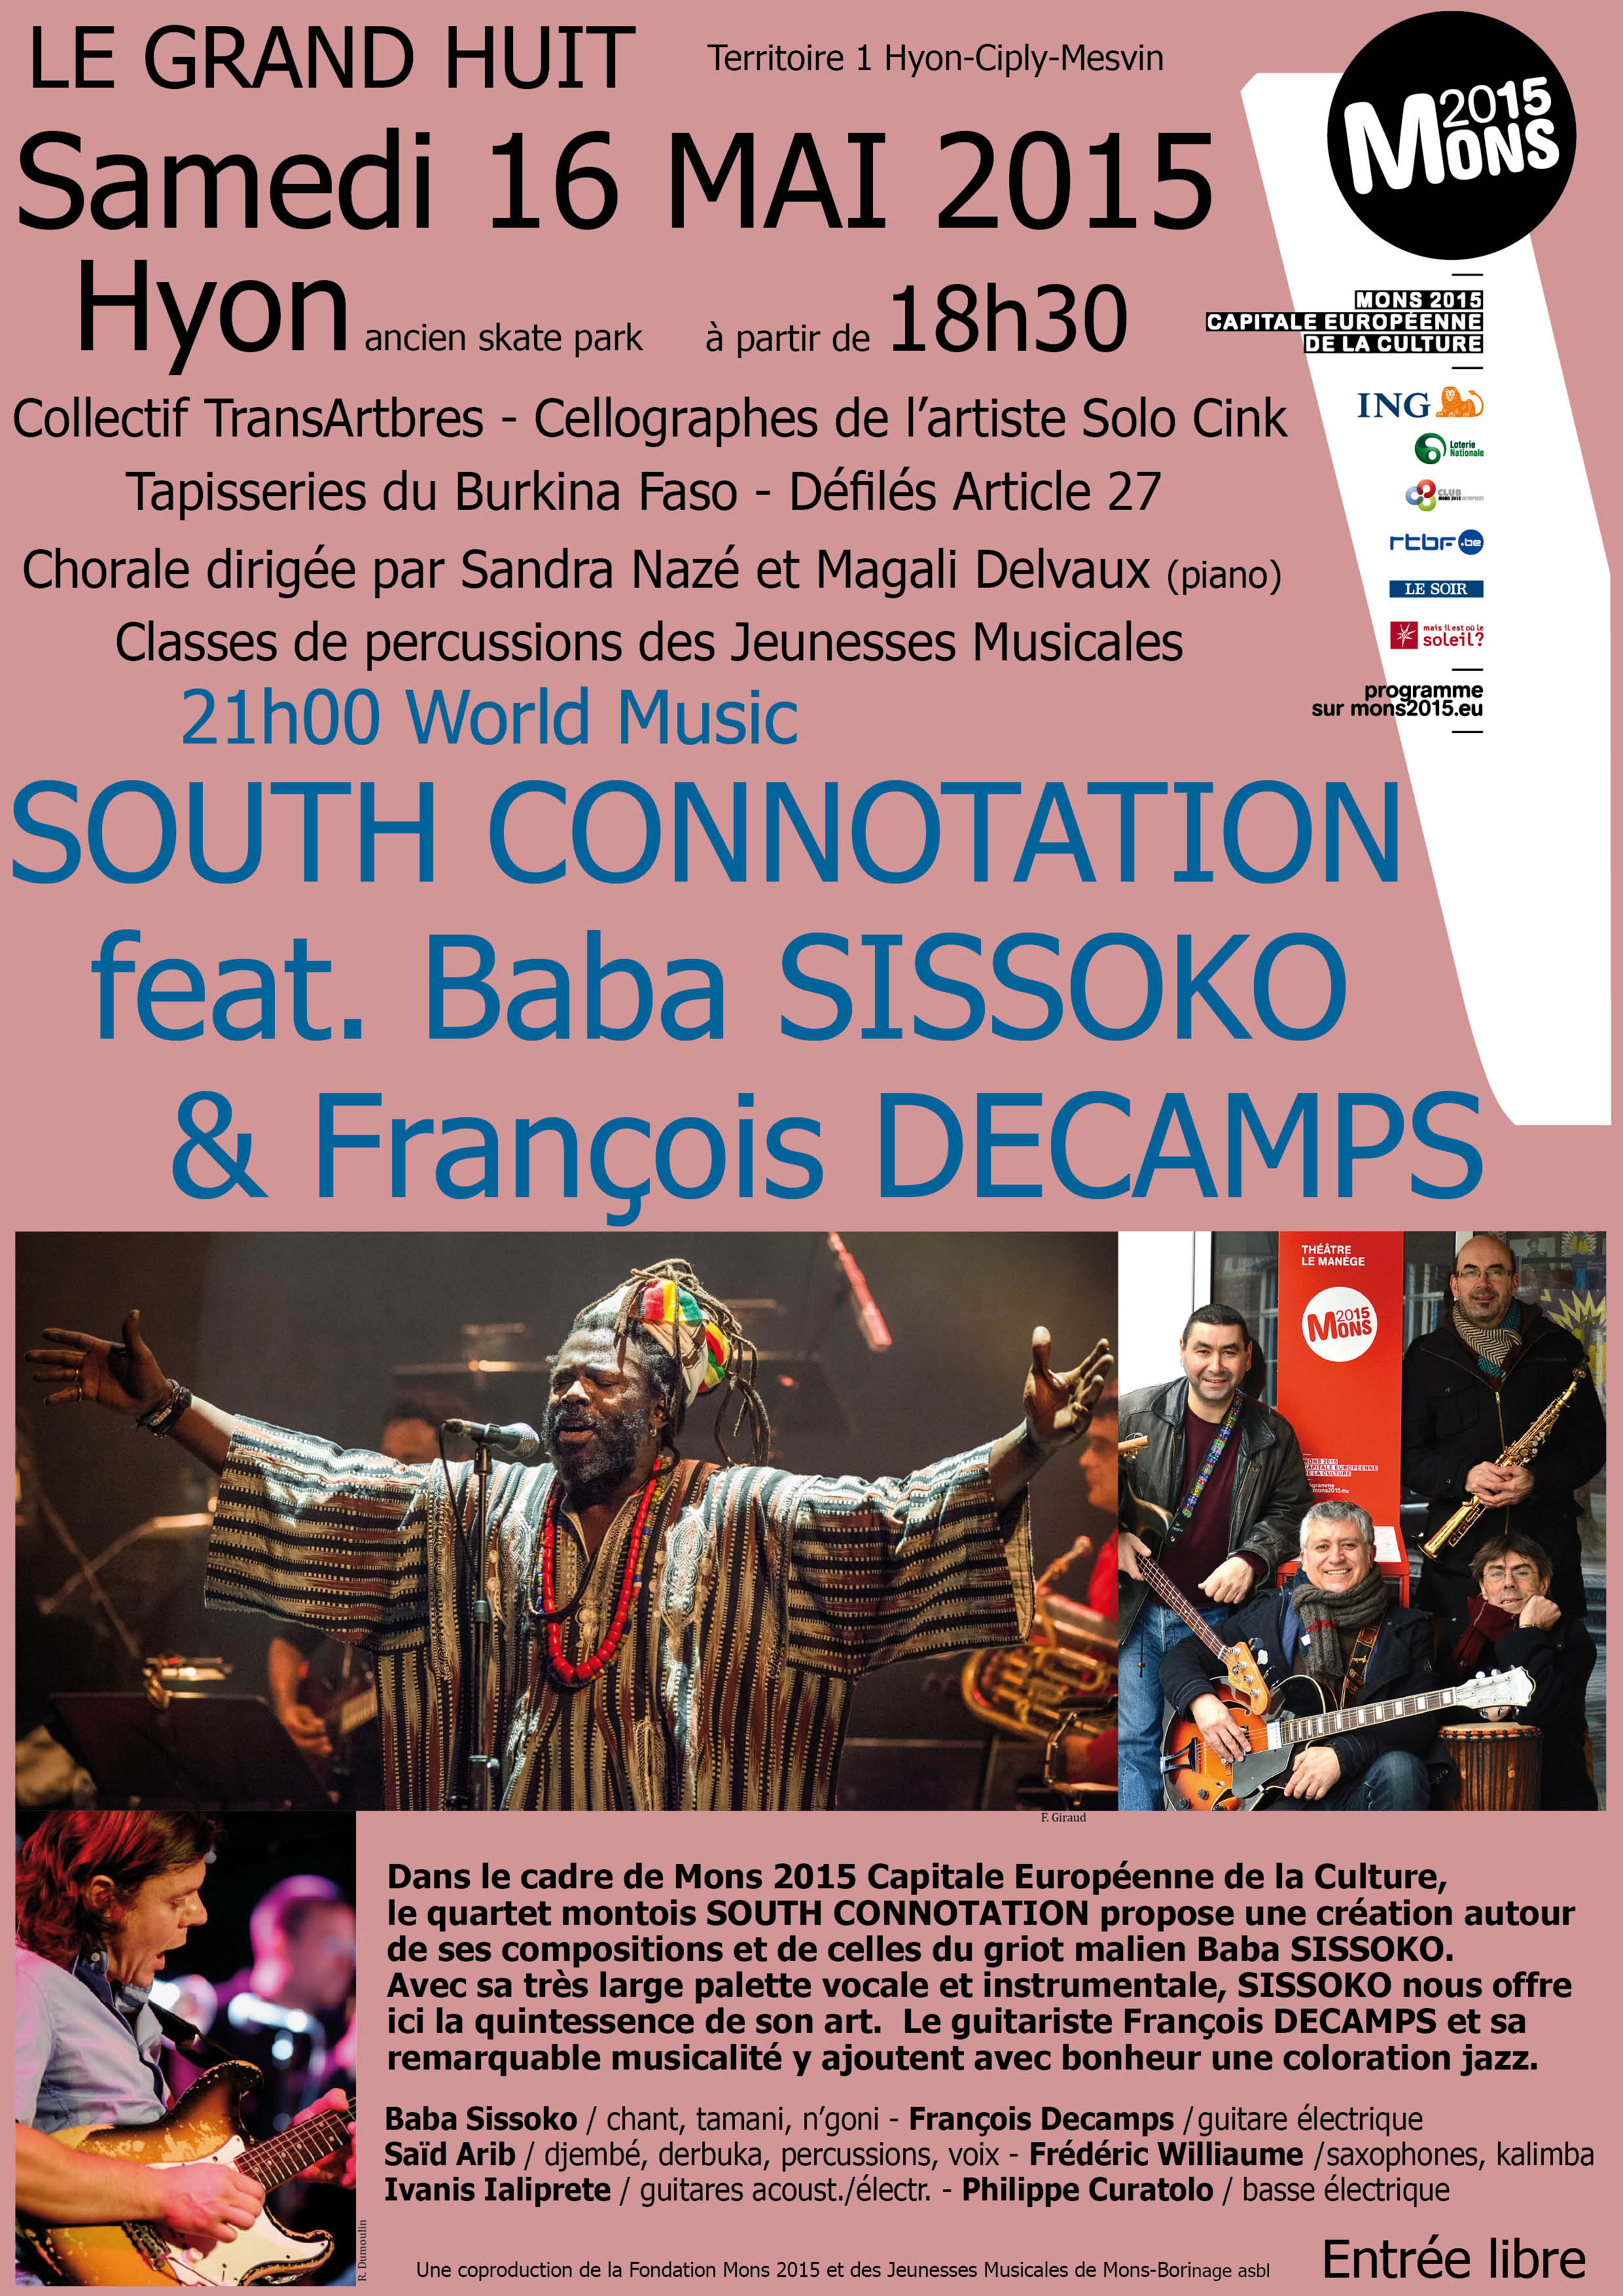 Affiche South Connotation feat. Baba Sissoko  FranÃois Decamps mars 2015 3